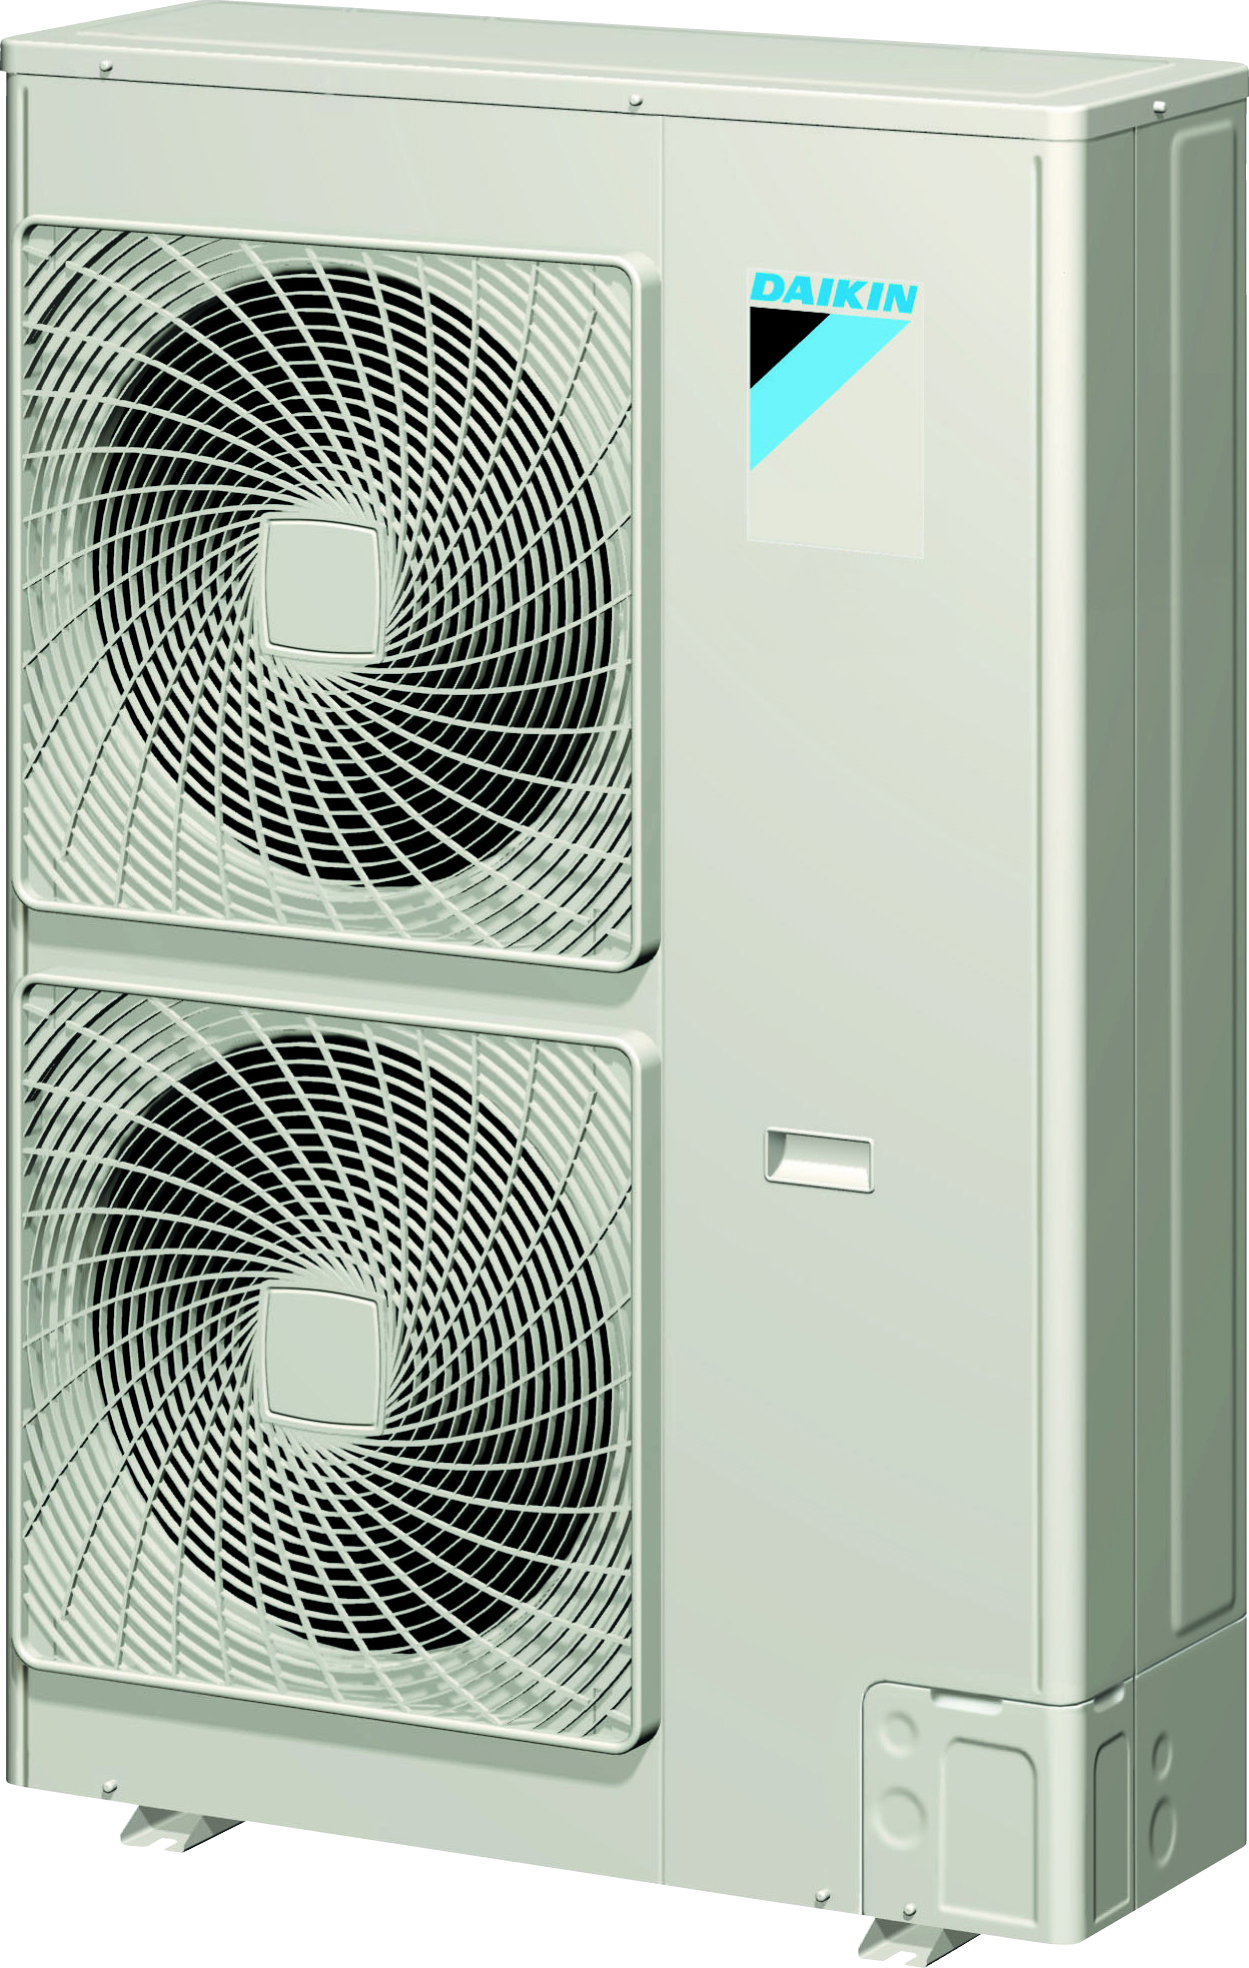 Heat pumps work like an air conditioner in the summer and a heater in  #178AB4